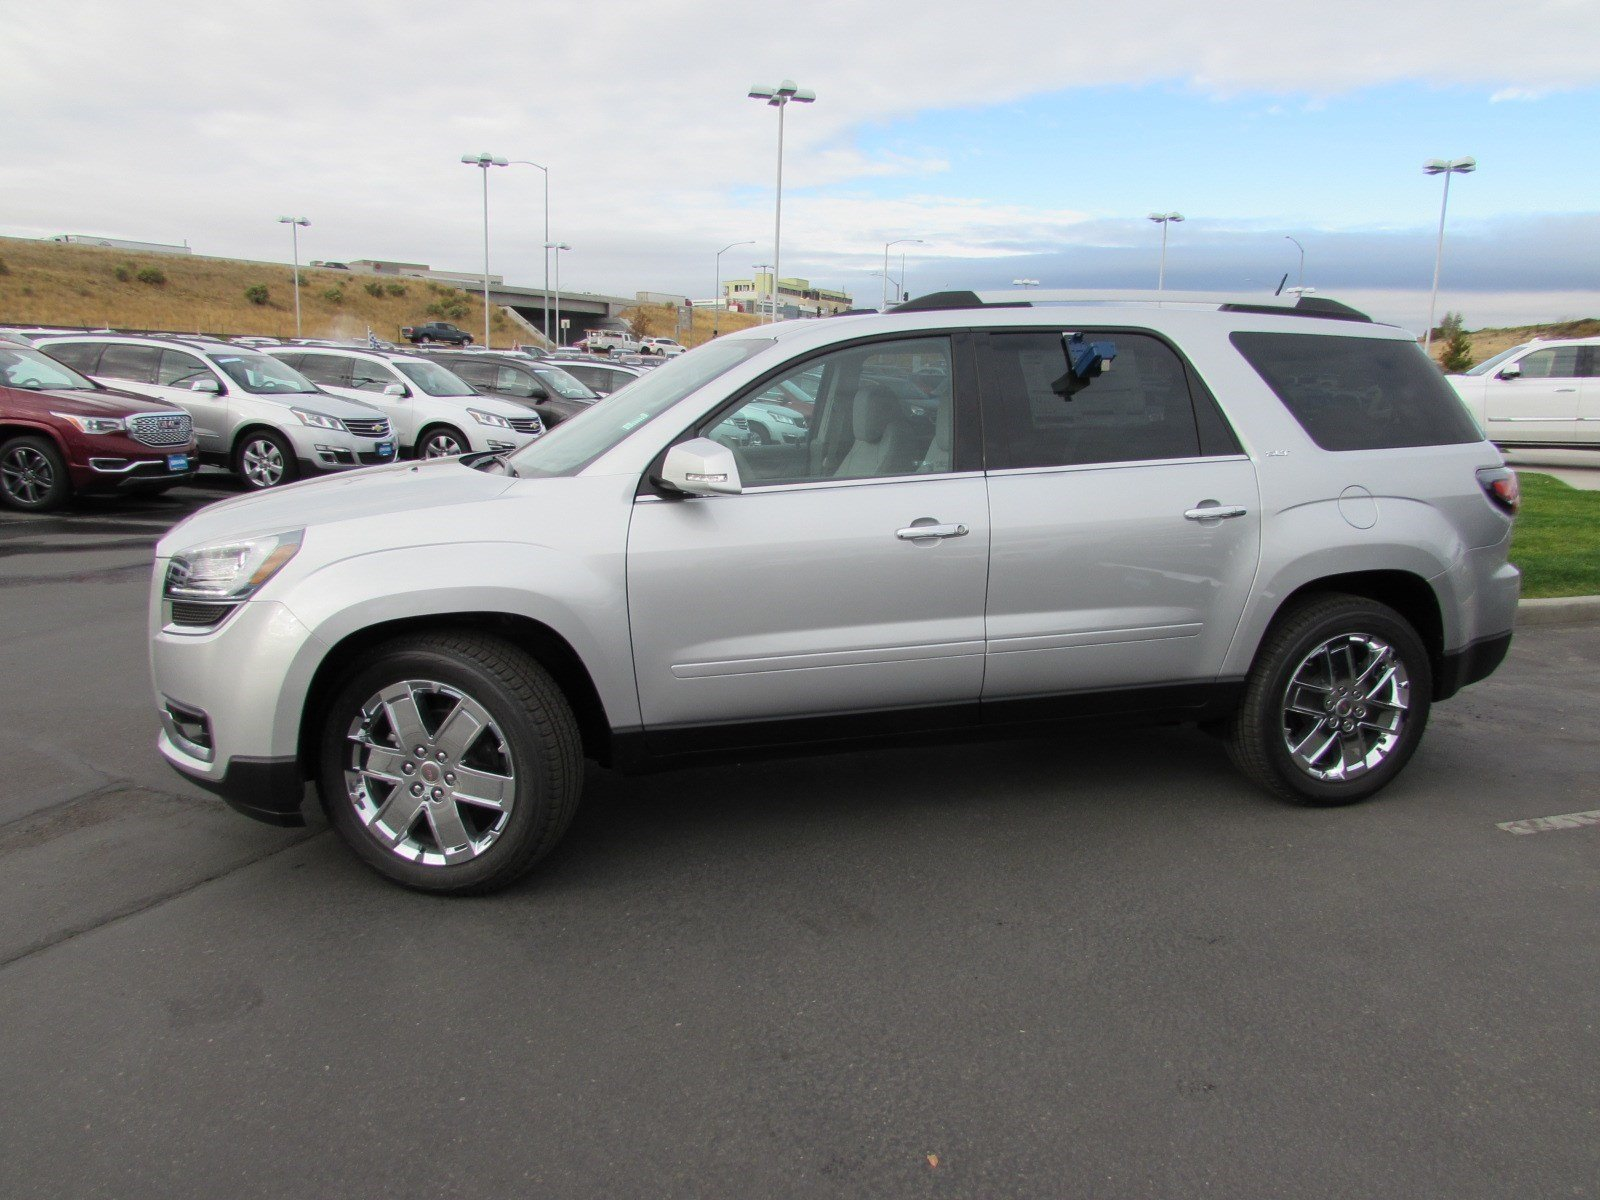 new 2017 gmc acadia limited limited in nampa 470057 kendall at the idaho center auto mall. Black Bedroom Furniture Sets. Home Design Ideas